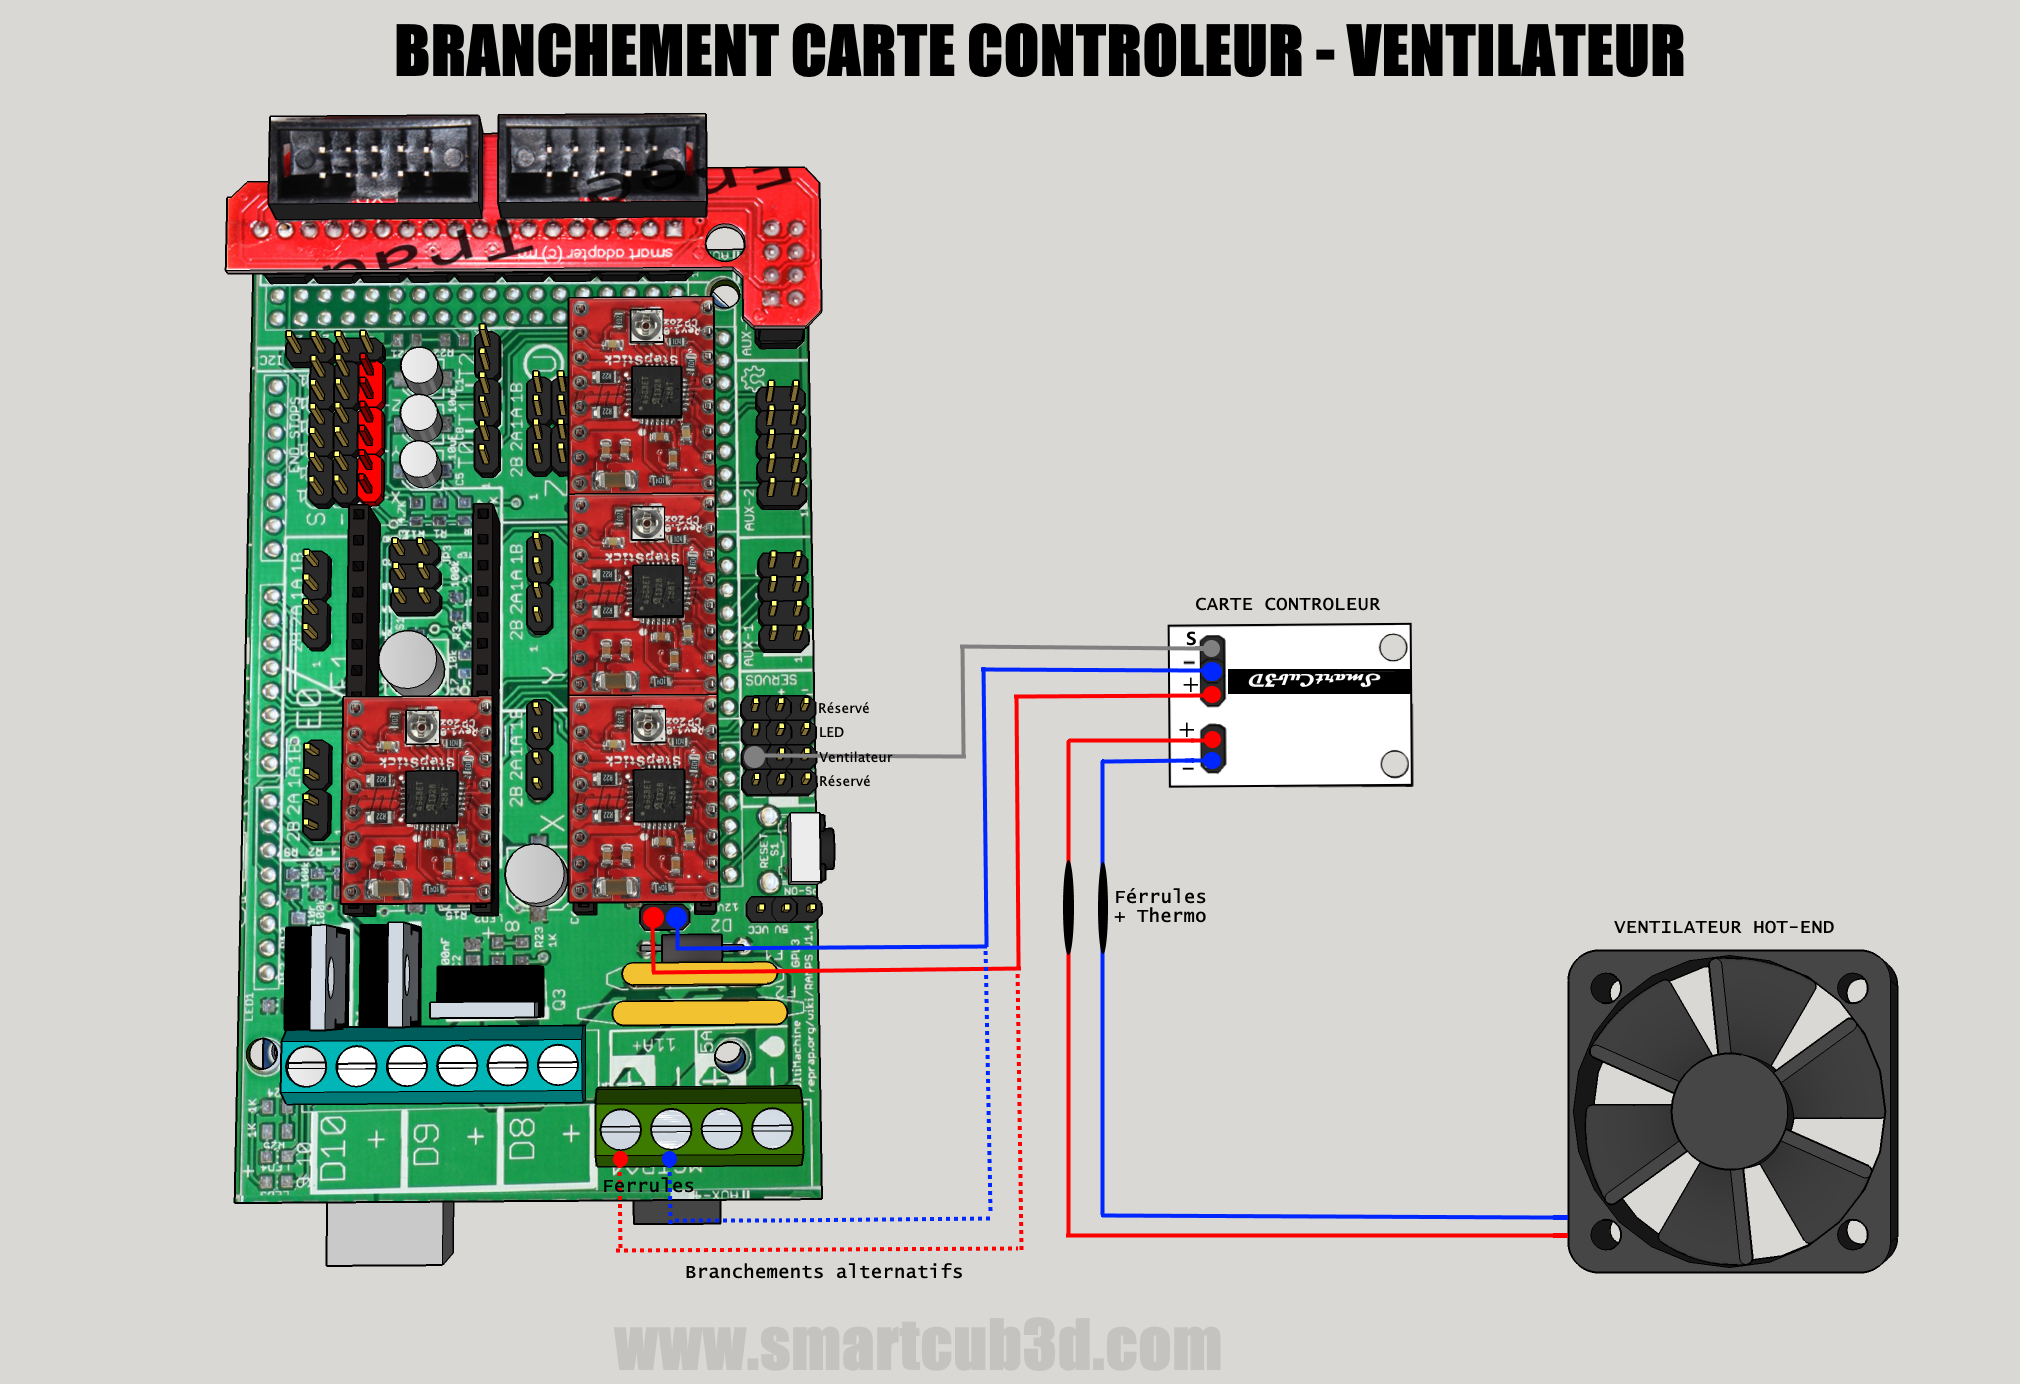 Installation carte controleur ventilateur